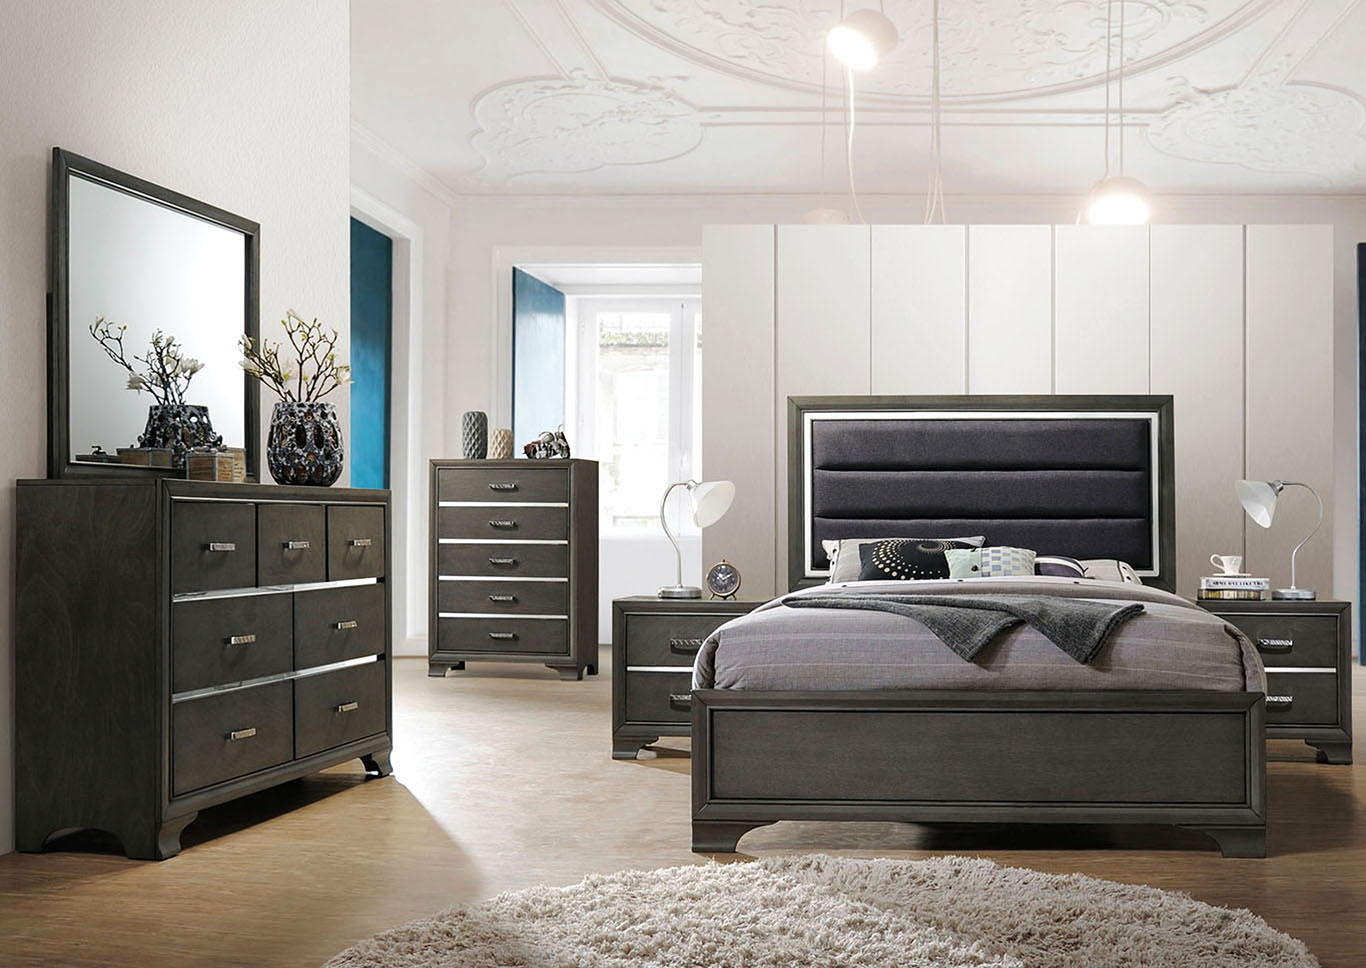 Carine II Gray Queen Bed,Acme